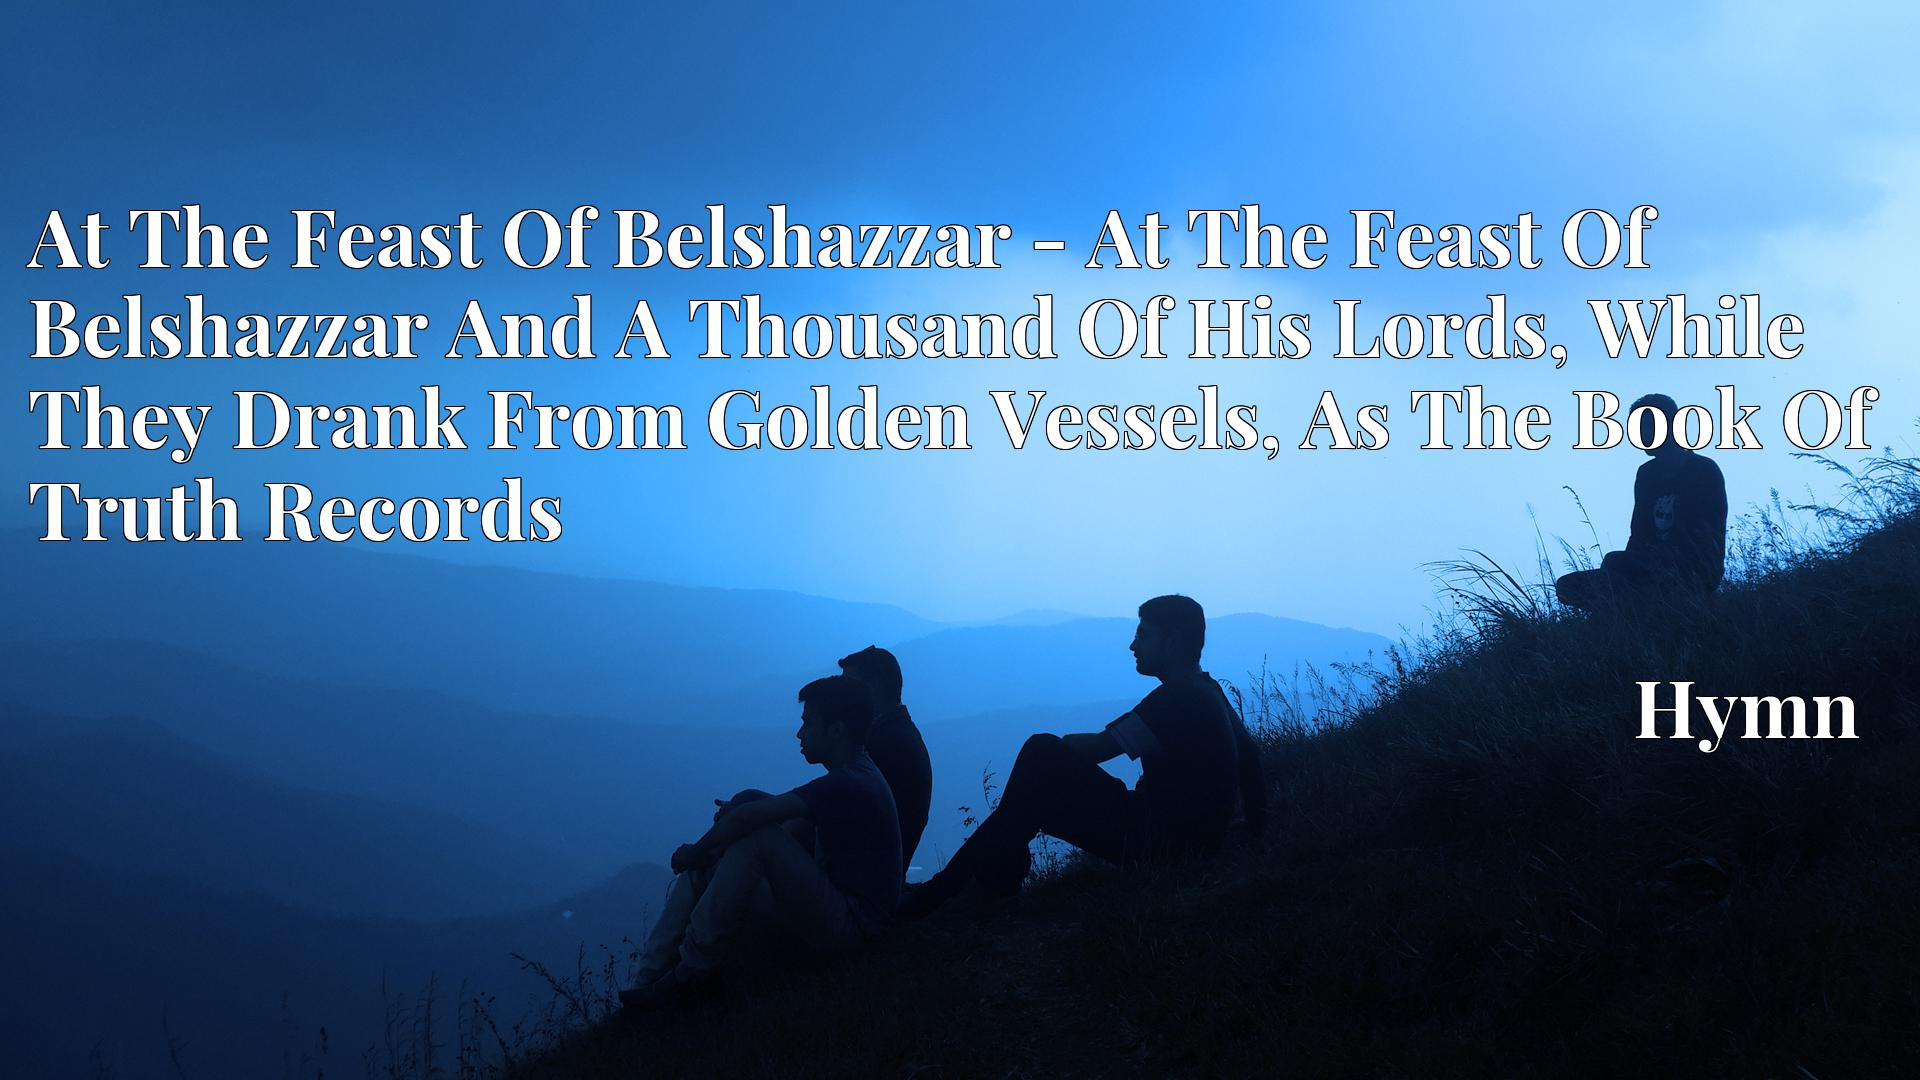 At The Feast Of Belshazzar - At The Feast Of Belshazzar And A Thousand Of His Lords, While They Drank From Golden Vessels, As The Book Of Truth Records - Hymn